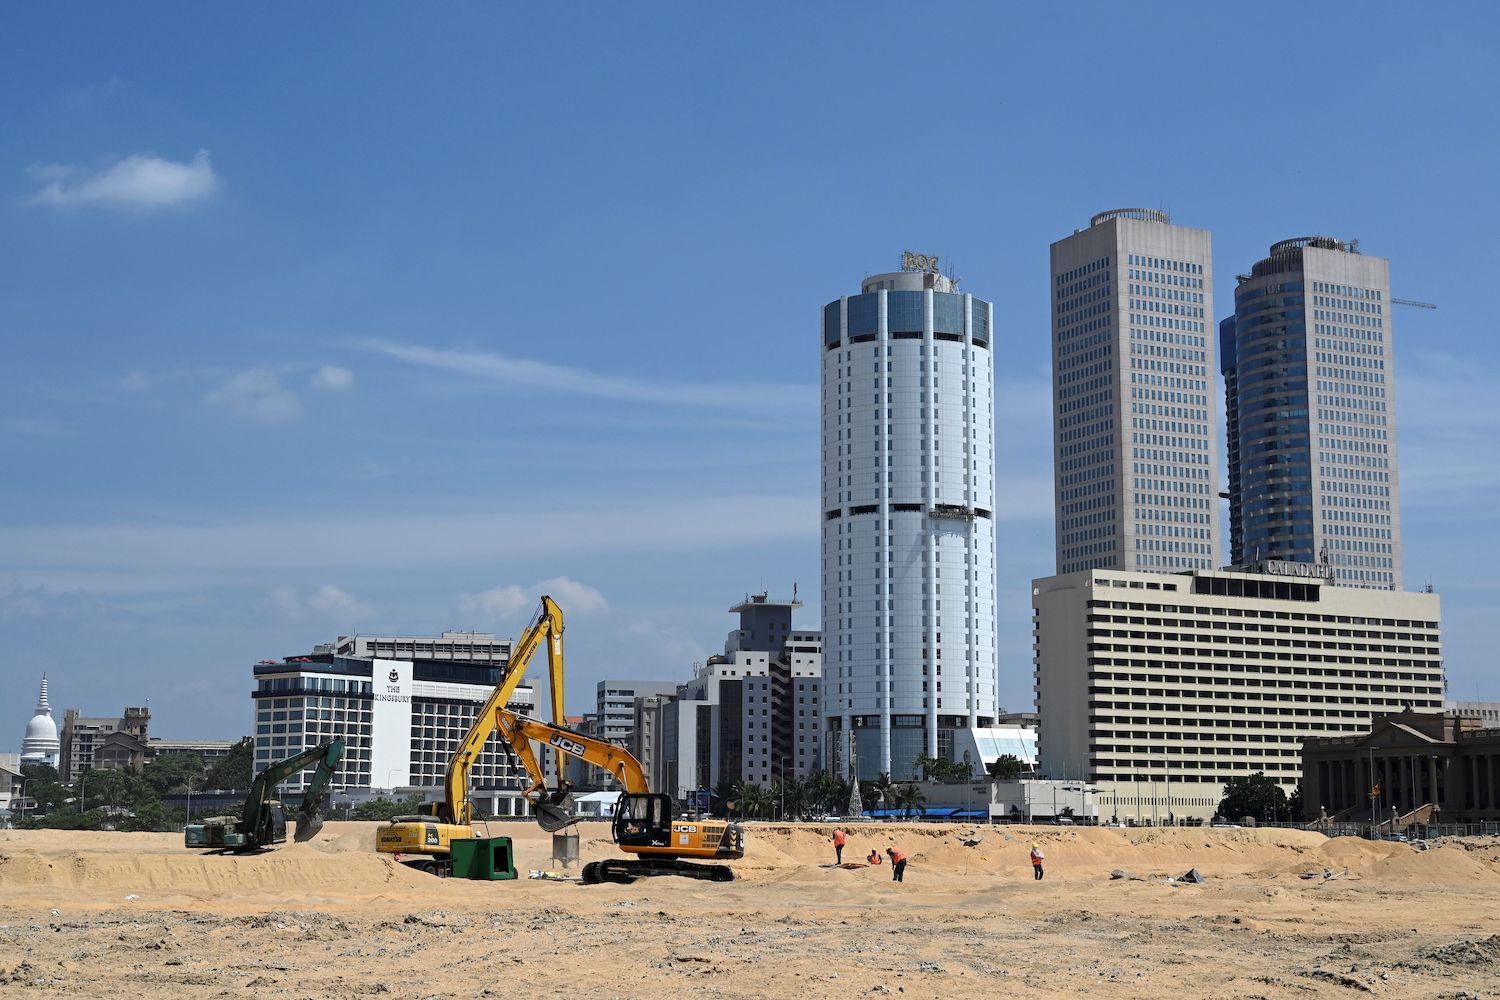 Excavators move soil at a construction site on reclaimed land, part of the Chinese-funded Port City project in Colombo, Sri Lanka, on Feb. 24, 2020.